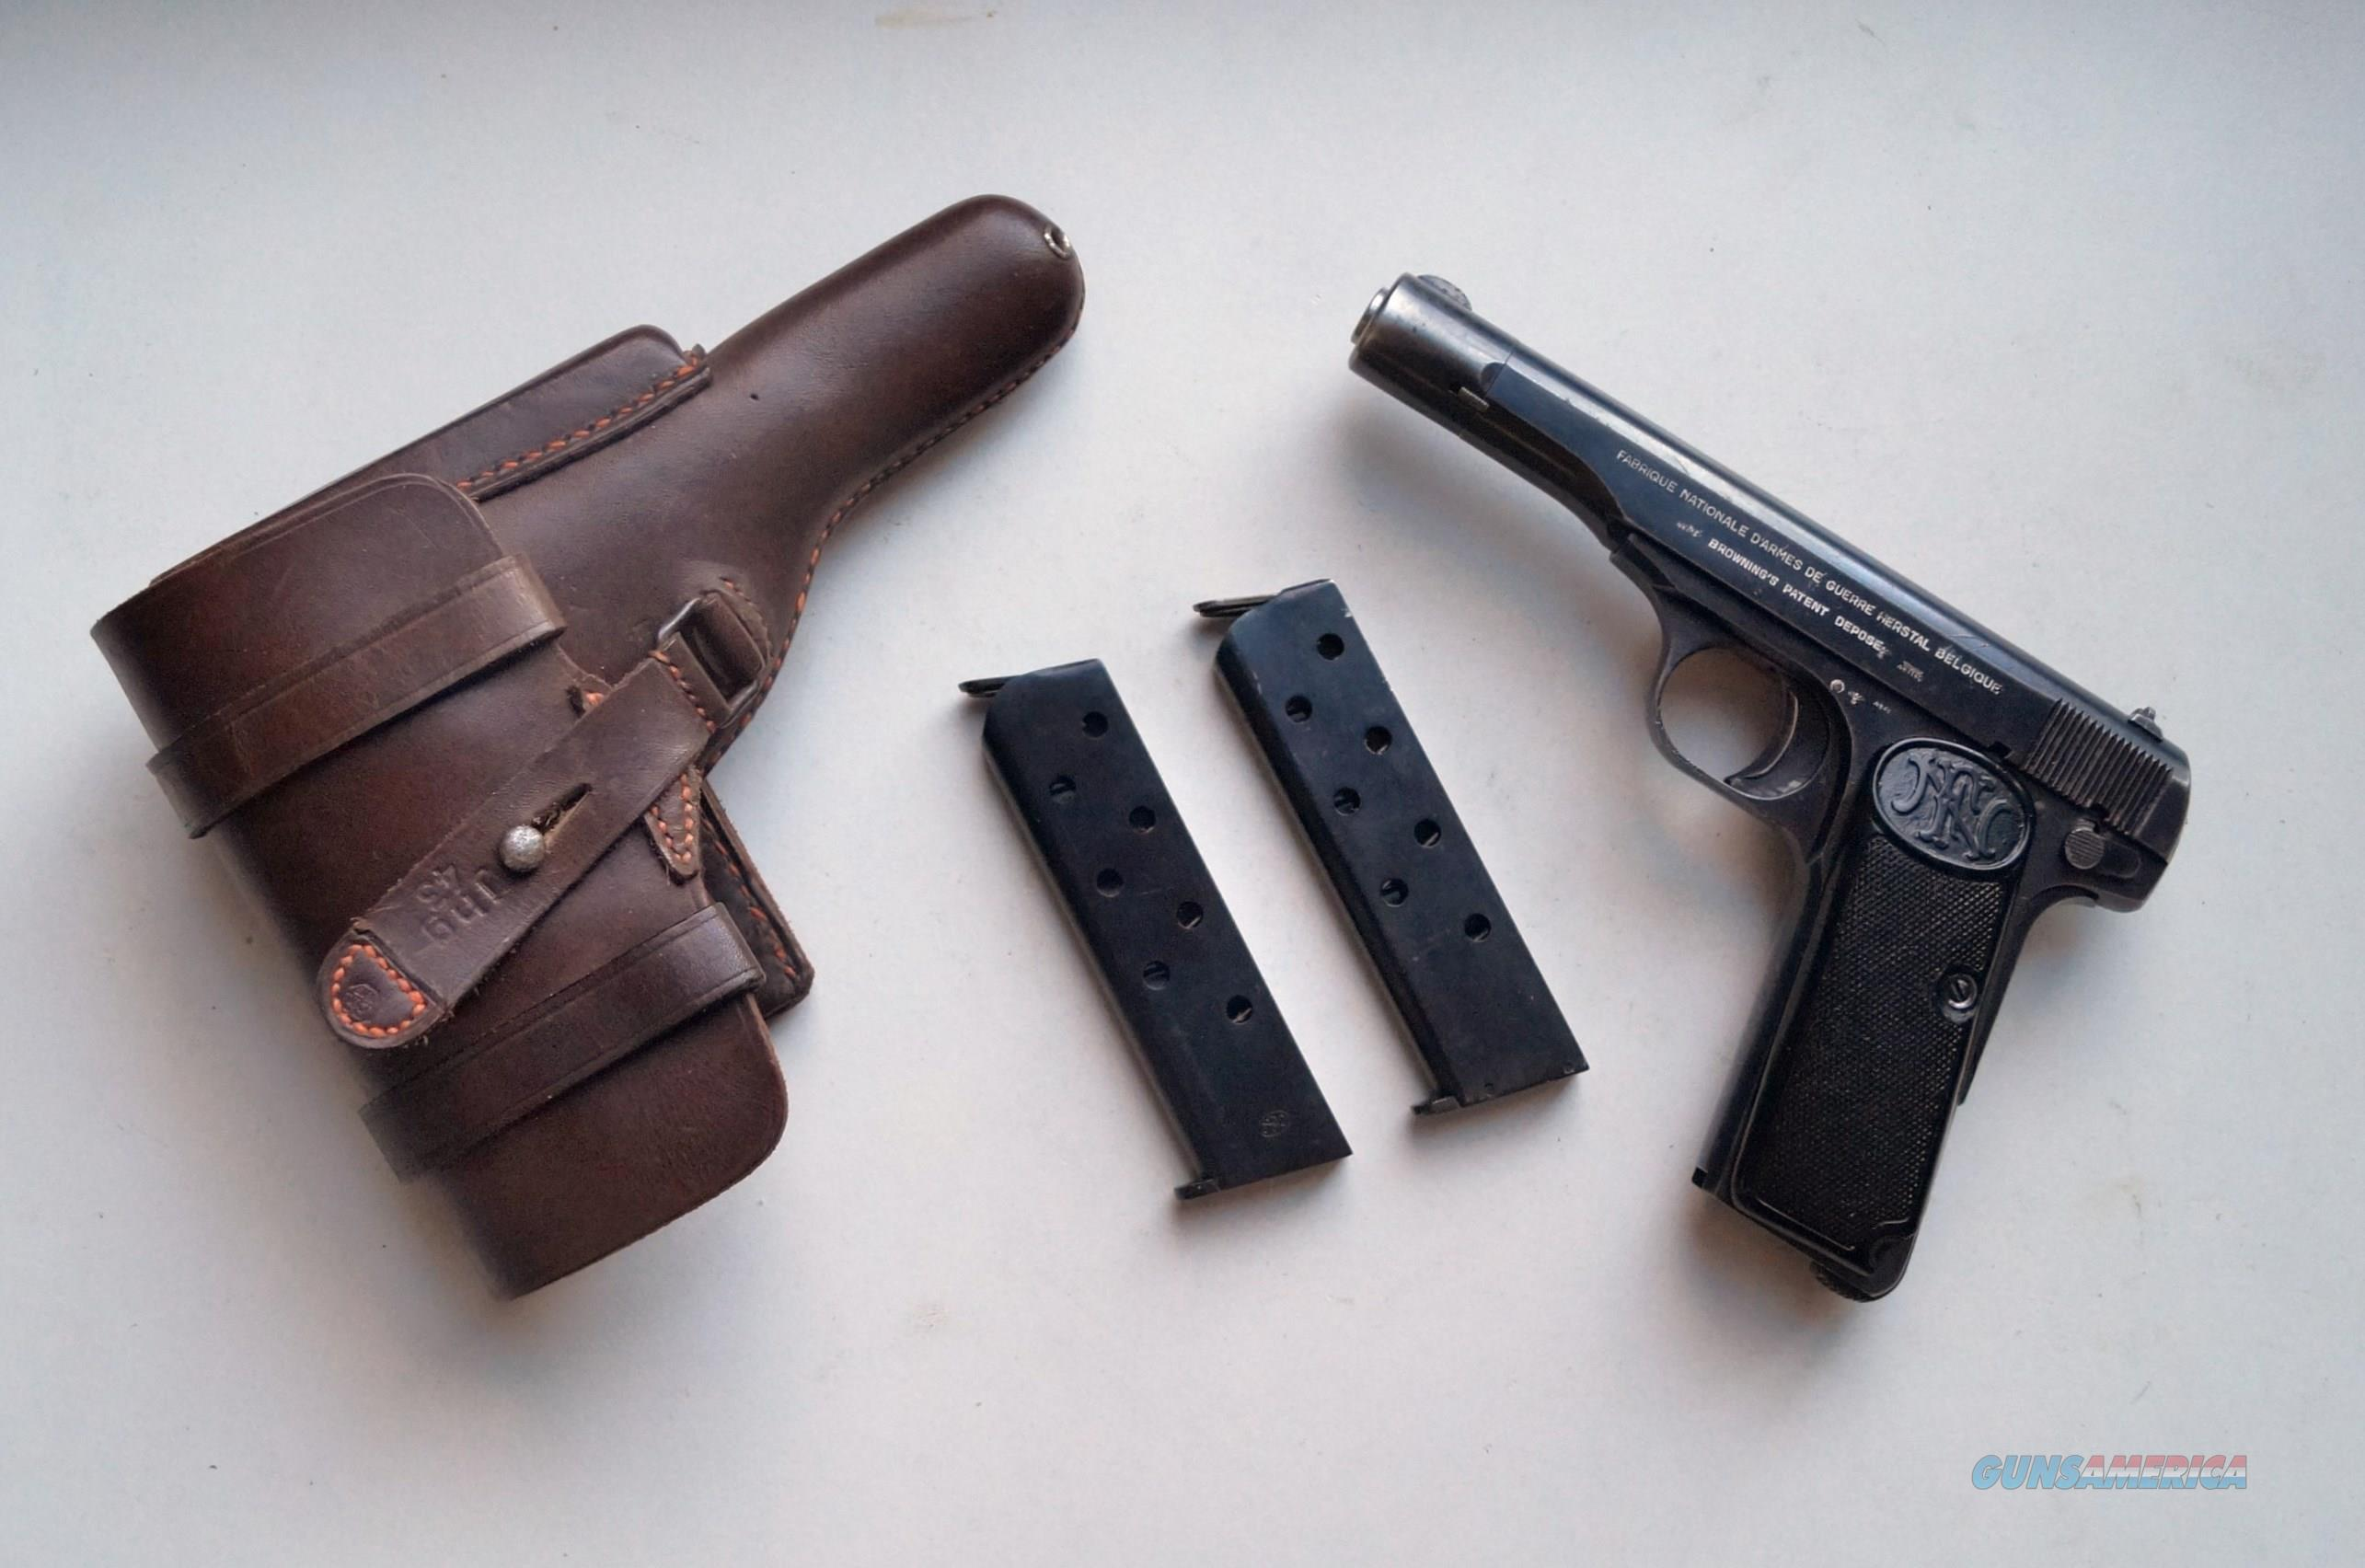 1922 F N BROWNING NAZI MARKED RIG  Guns > Pistols > Browning Pistols > Other Autos